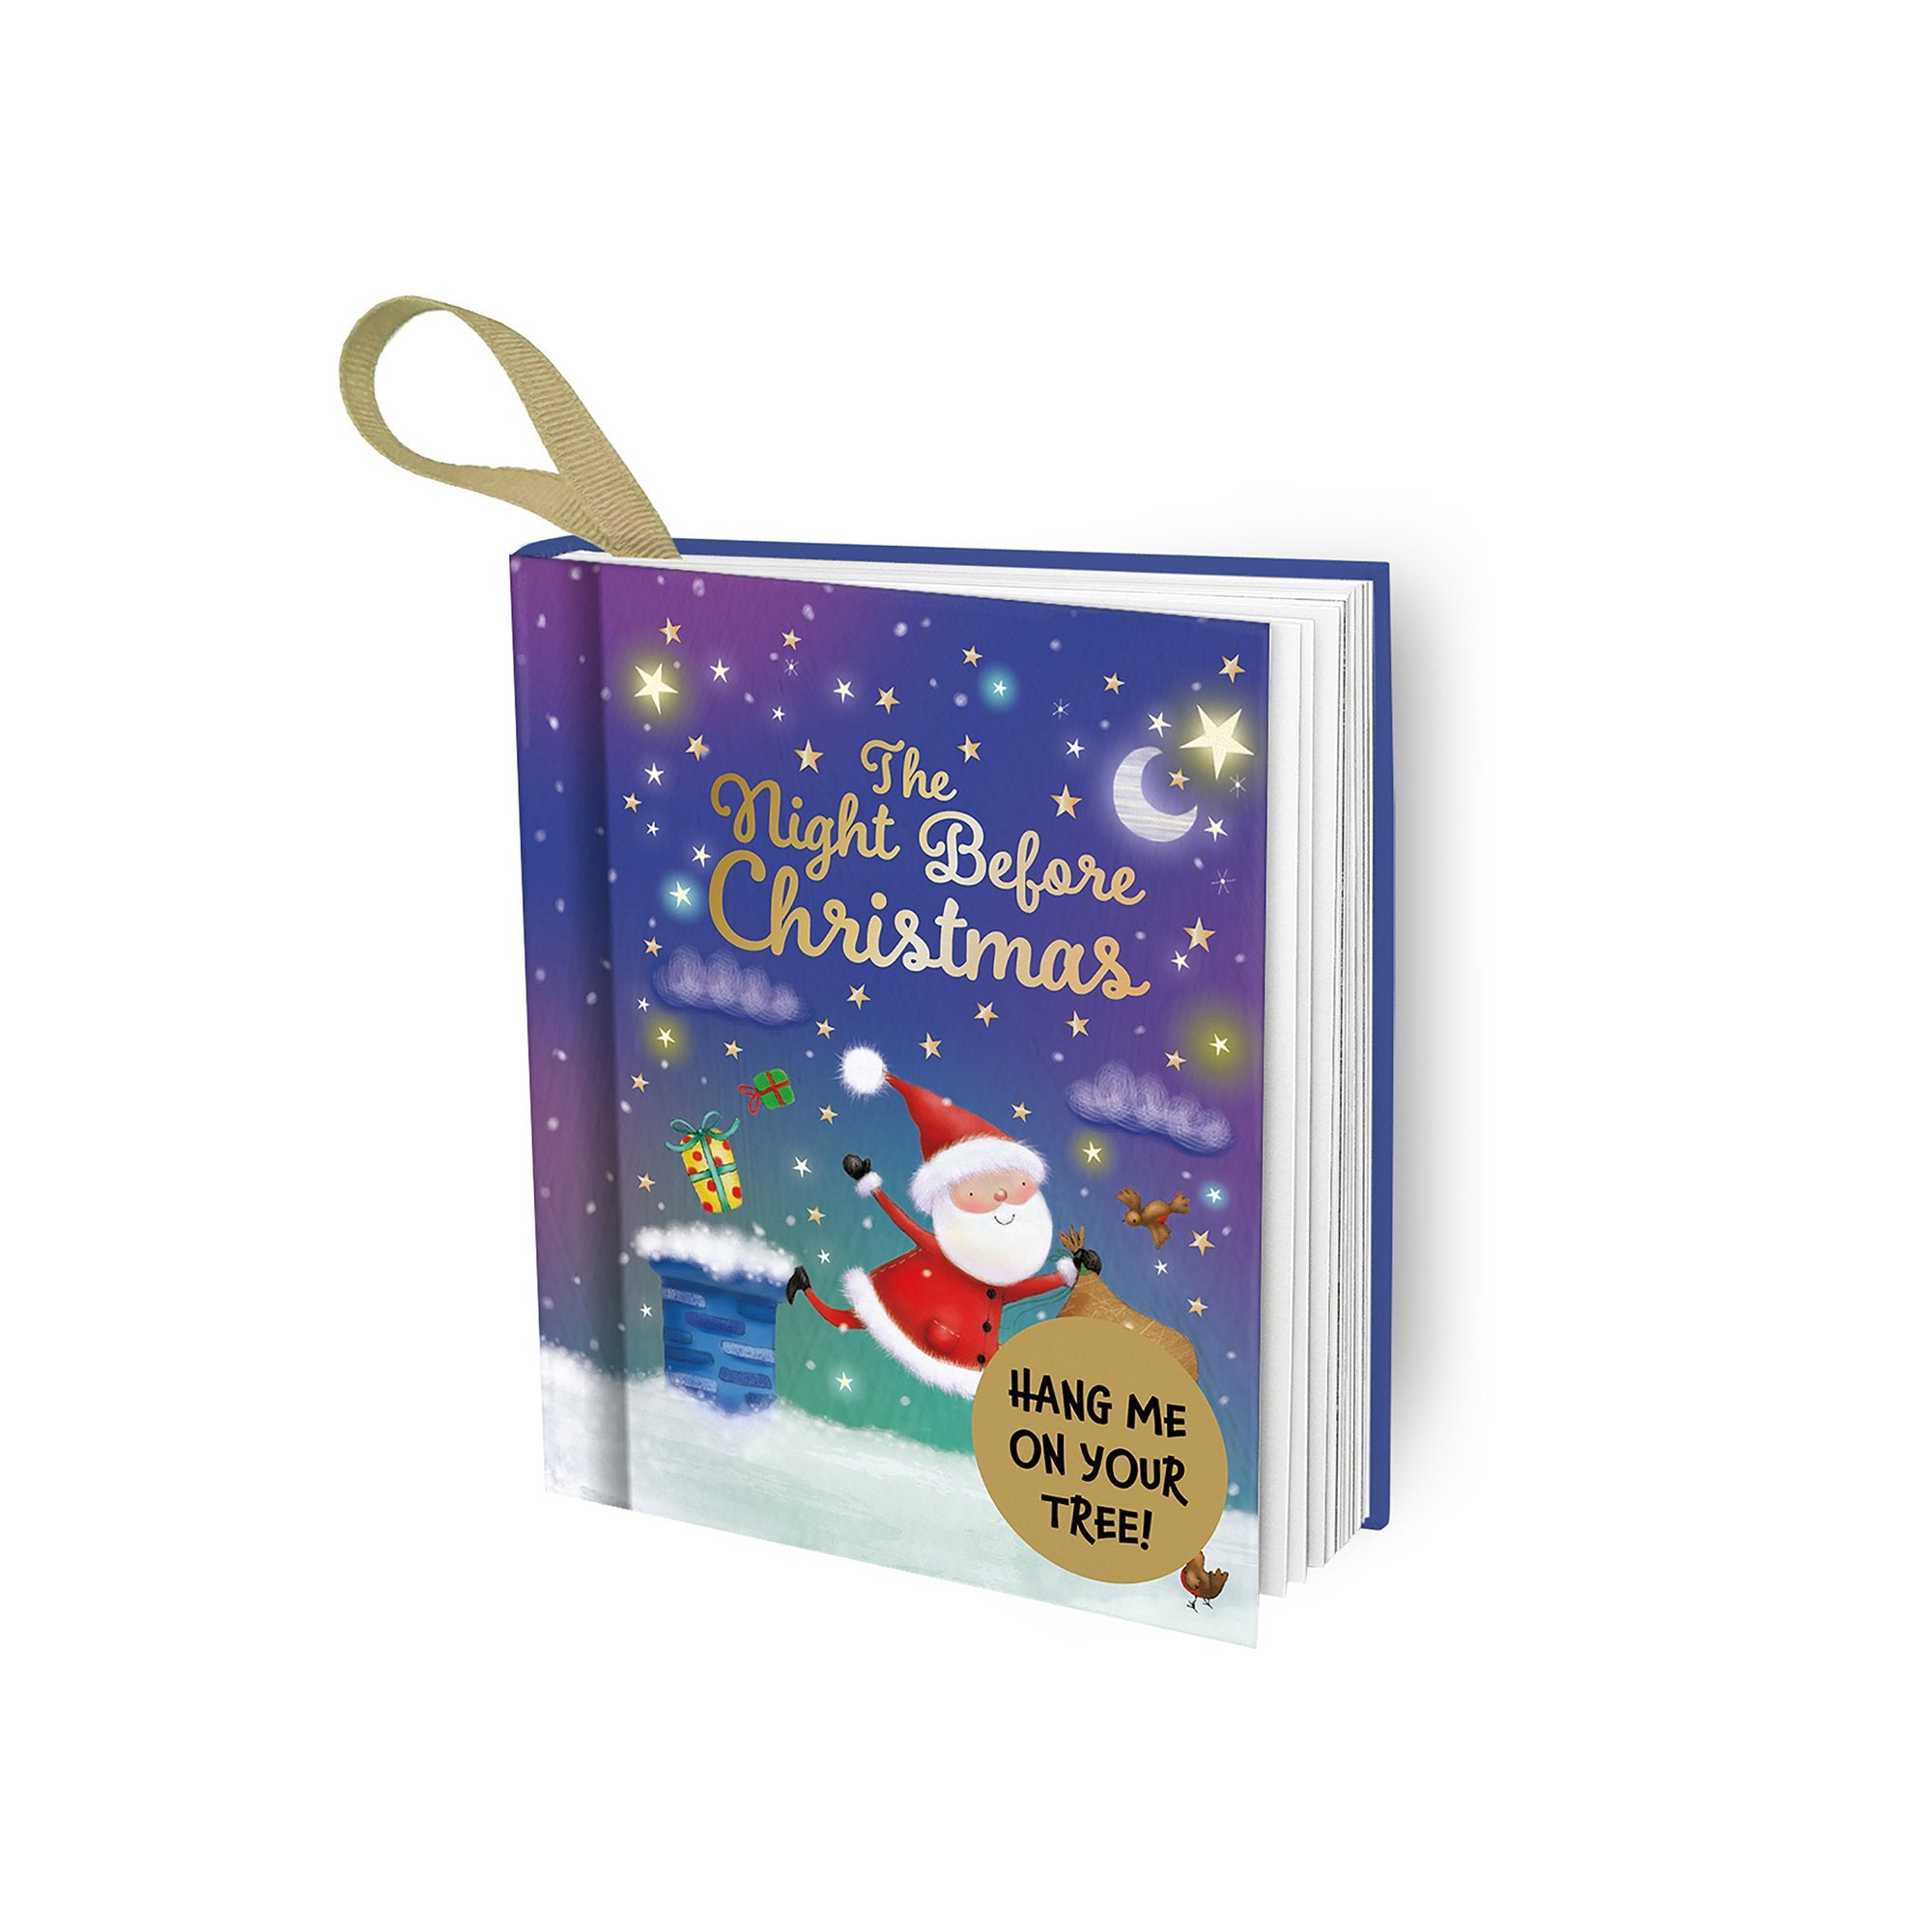 Christmas Giftbook - The Night Before Christmas - Half Moon Bay US